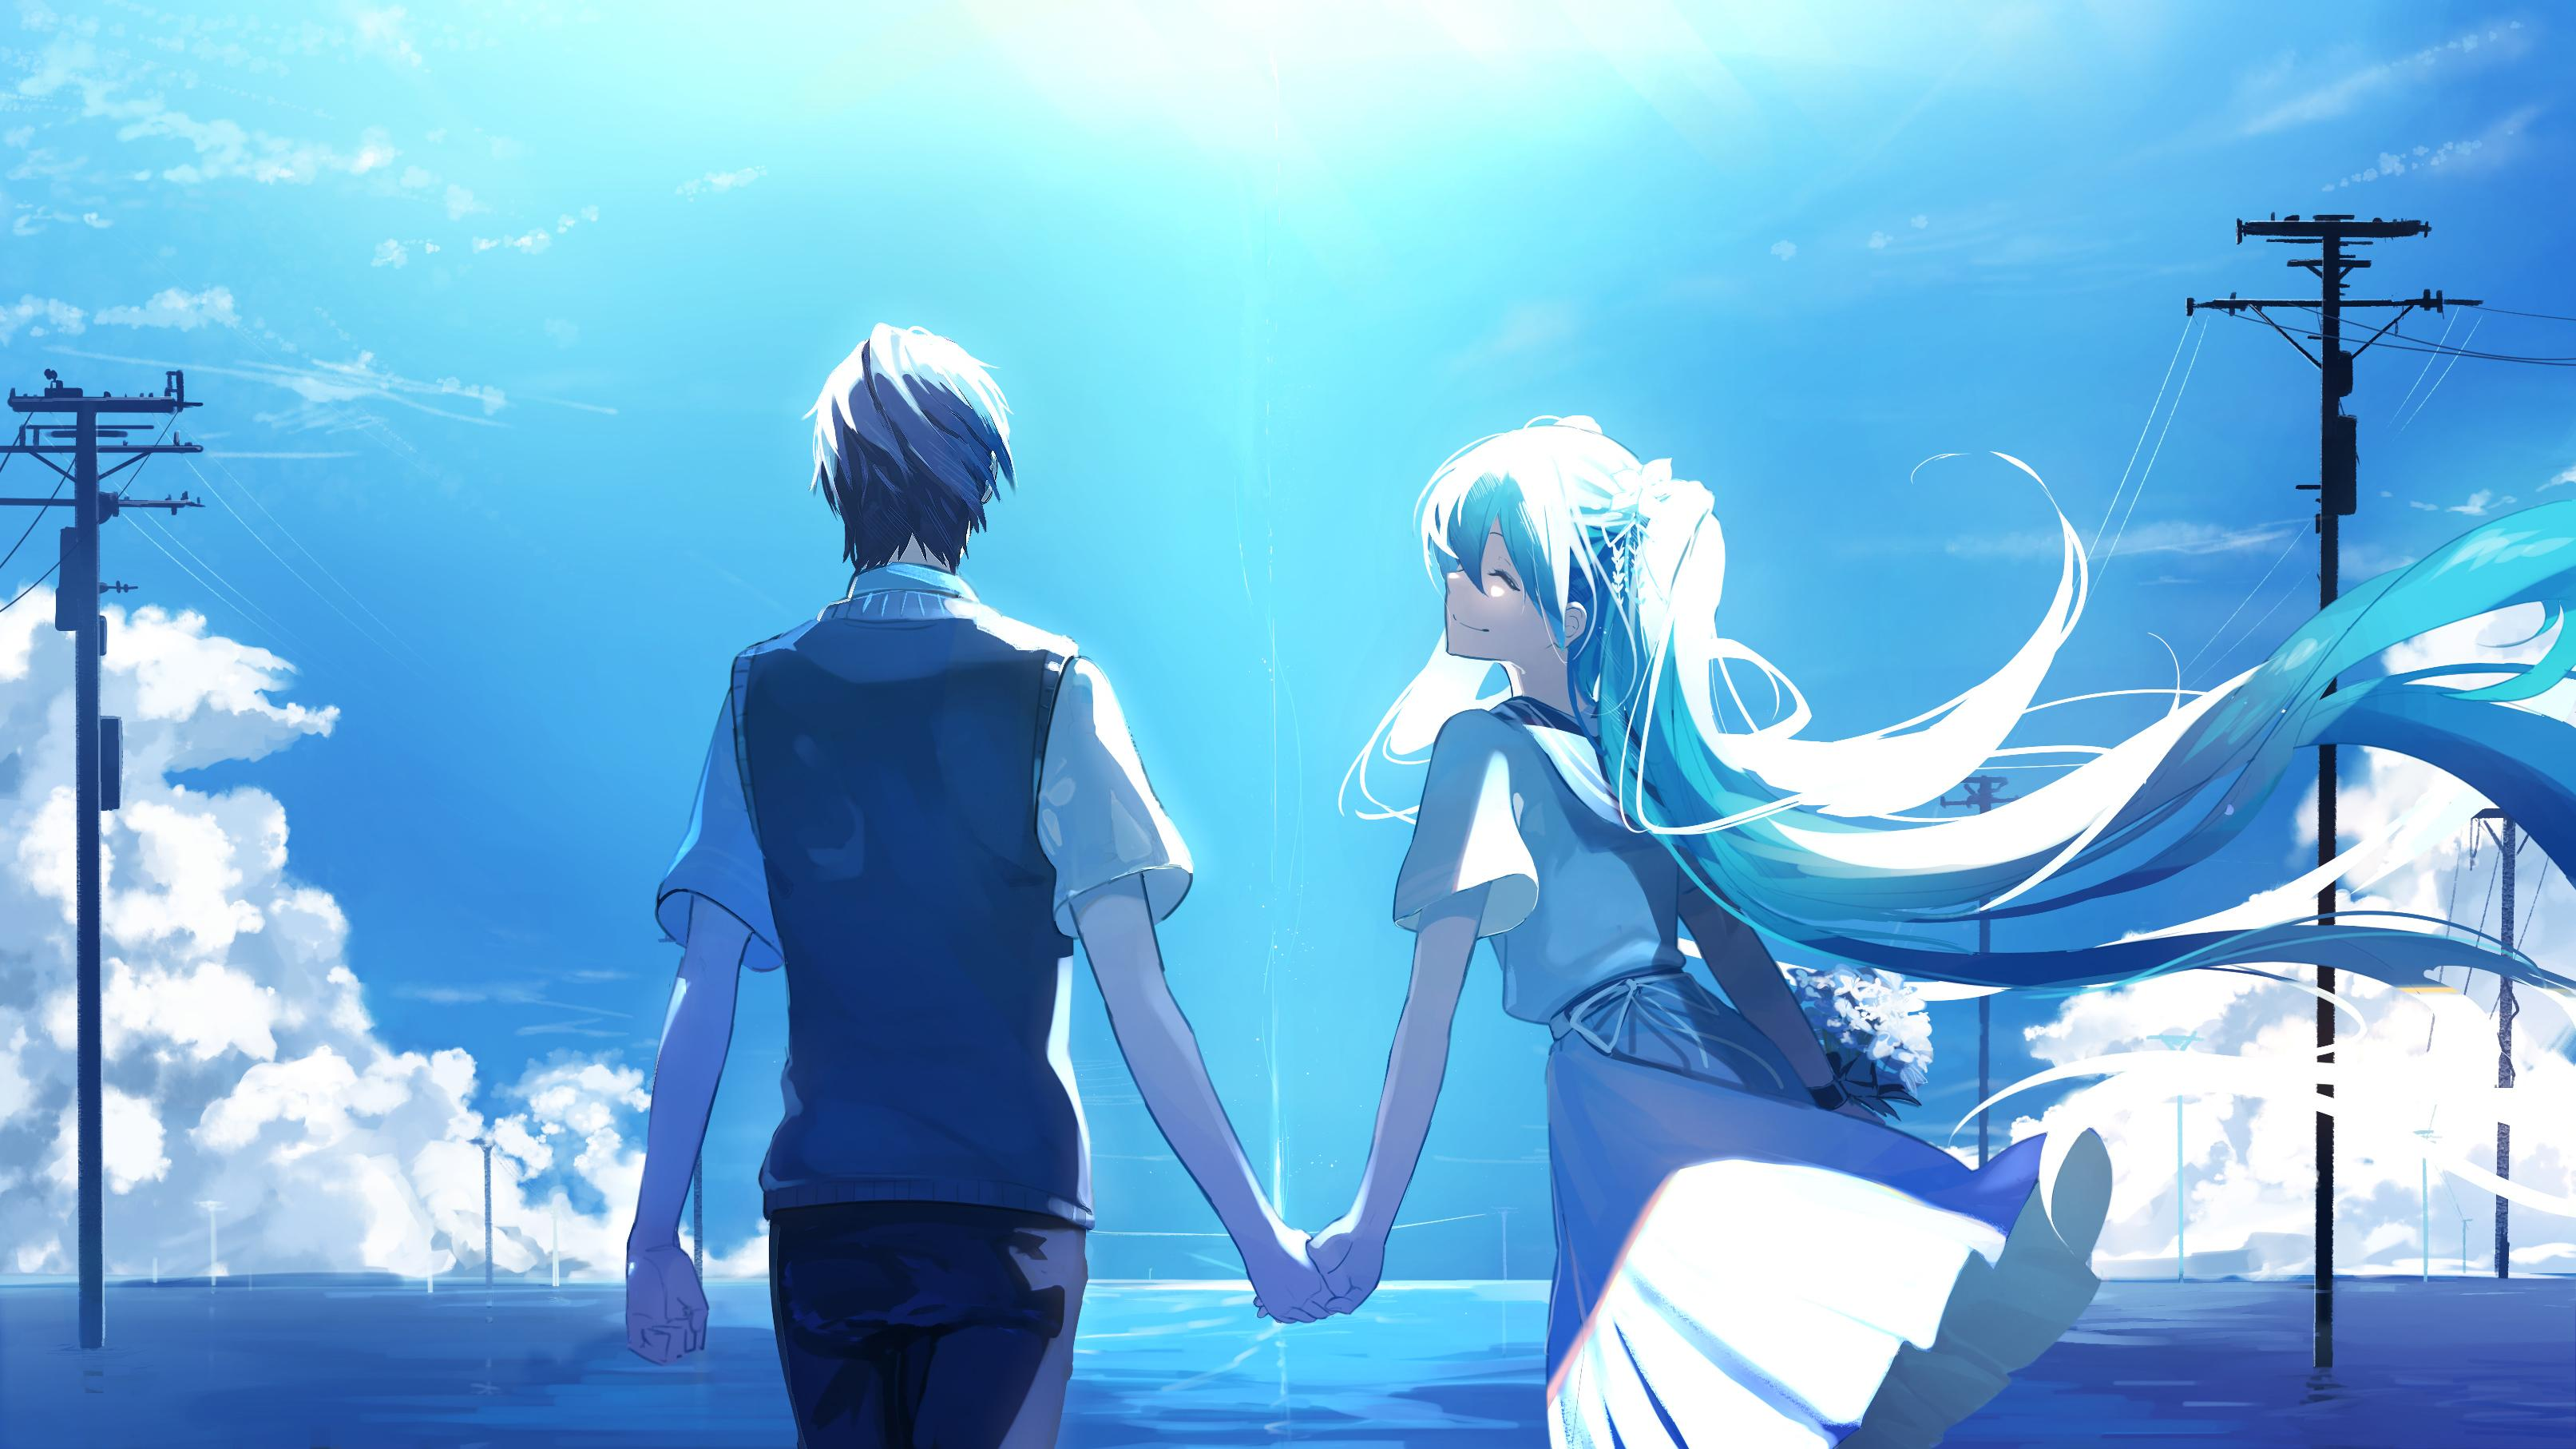 Anime Couples Wallpaper Posted By John Cunningham